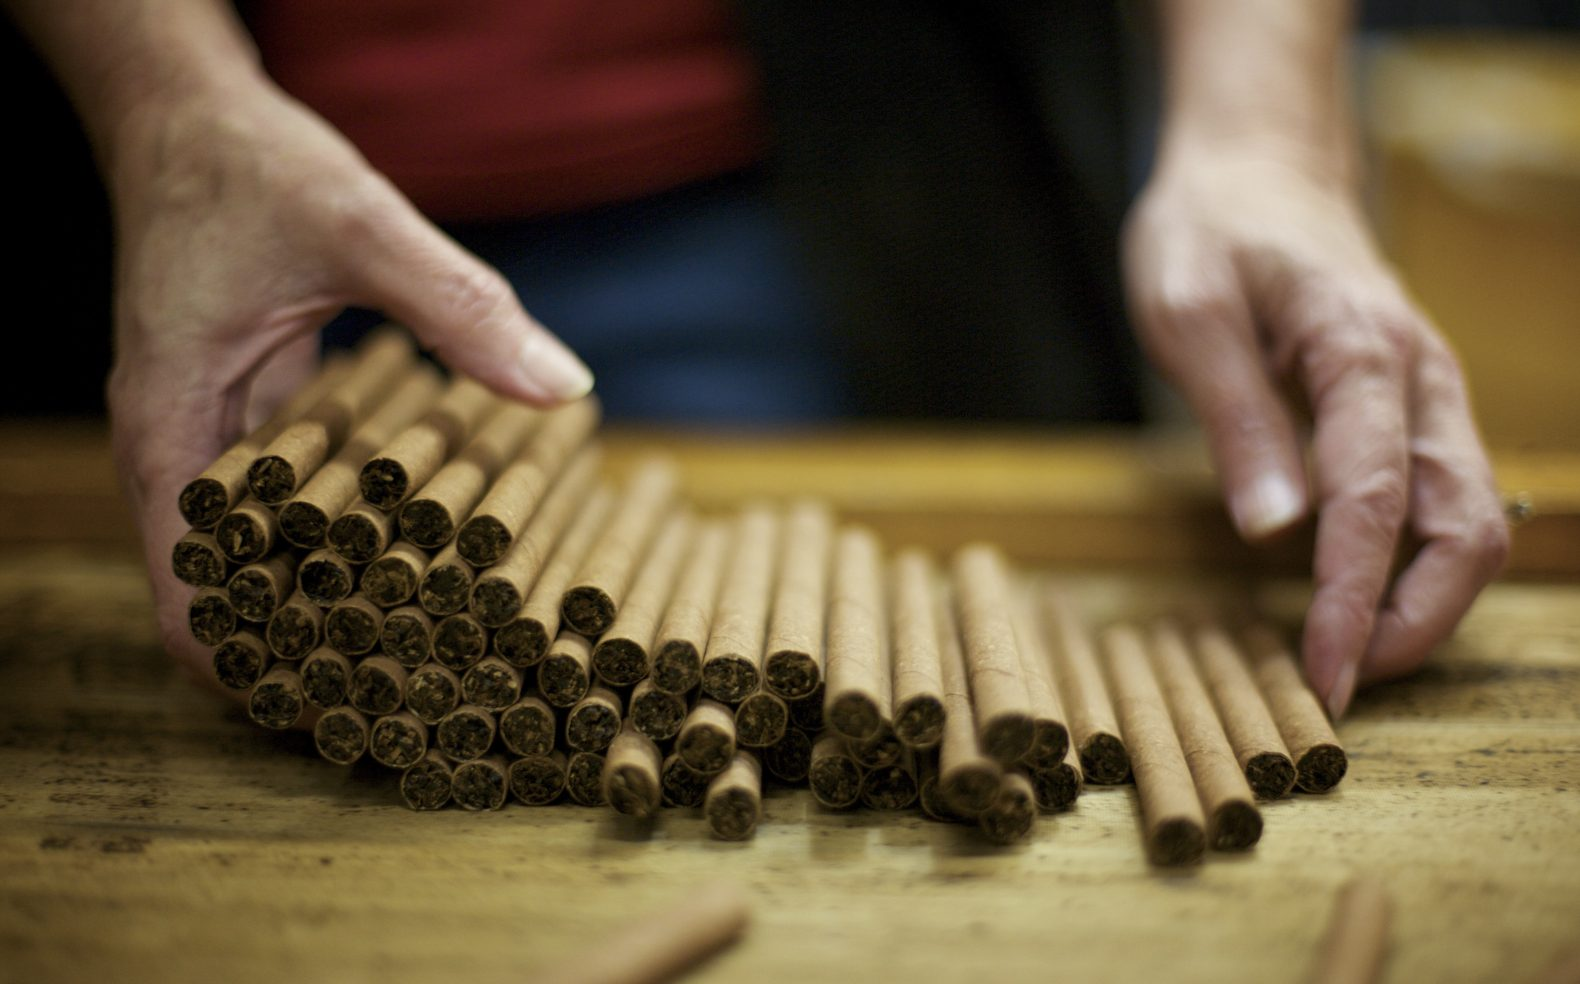 A worker's hands laying down a bunch of hand rolled, high end cigars on a table in a manufacturing facility.